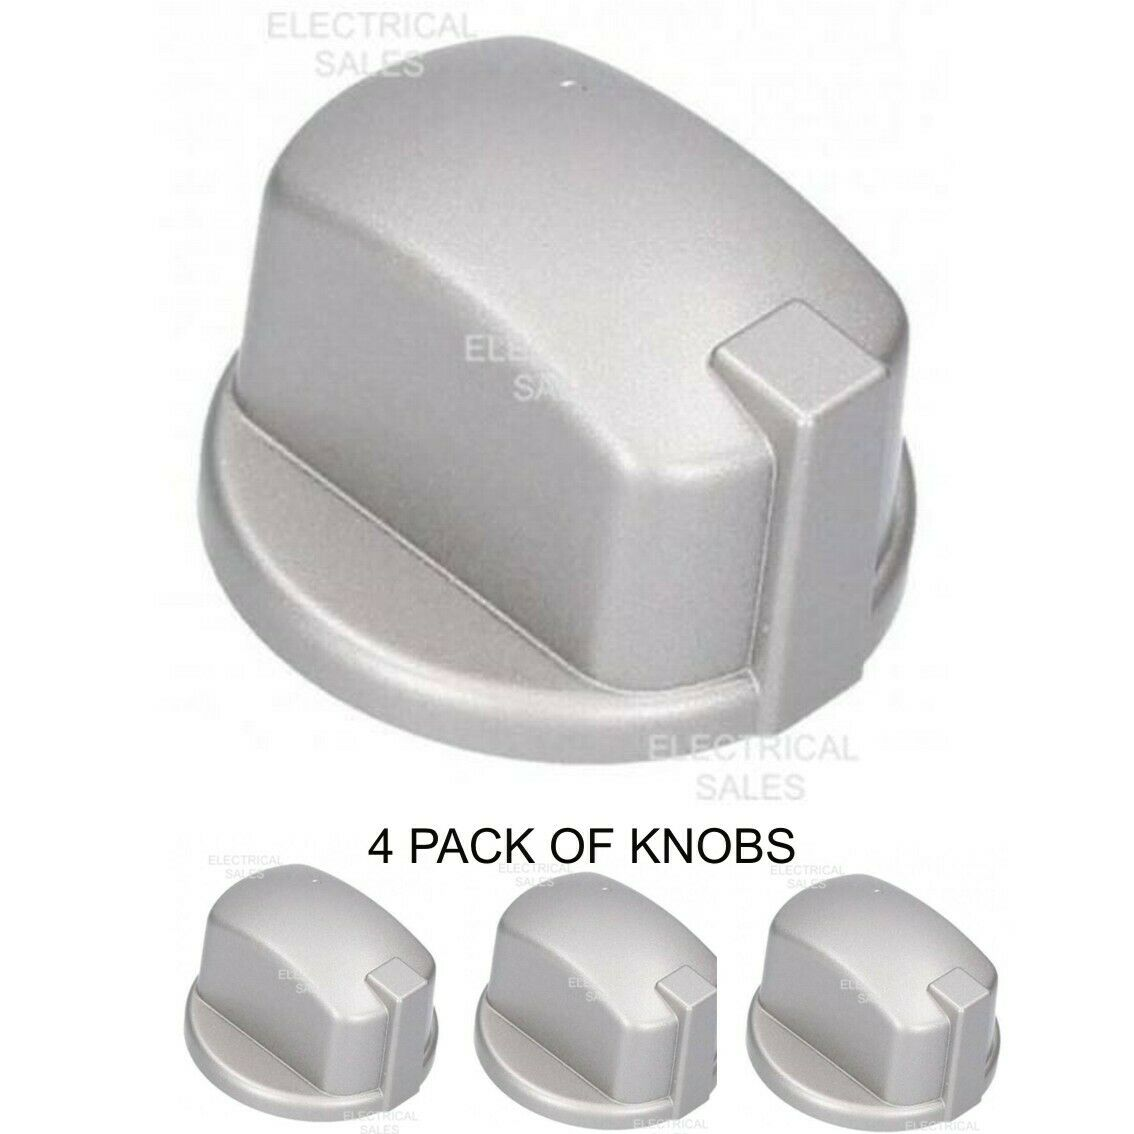 FITS HOTPOINT INDESIT OVEN COOKER KNOB GAS SWITCH SILVER INOX C00284958 x 3 PACK